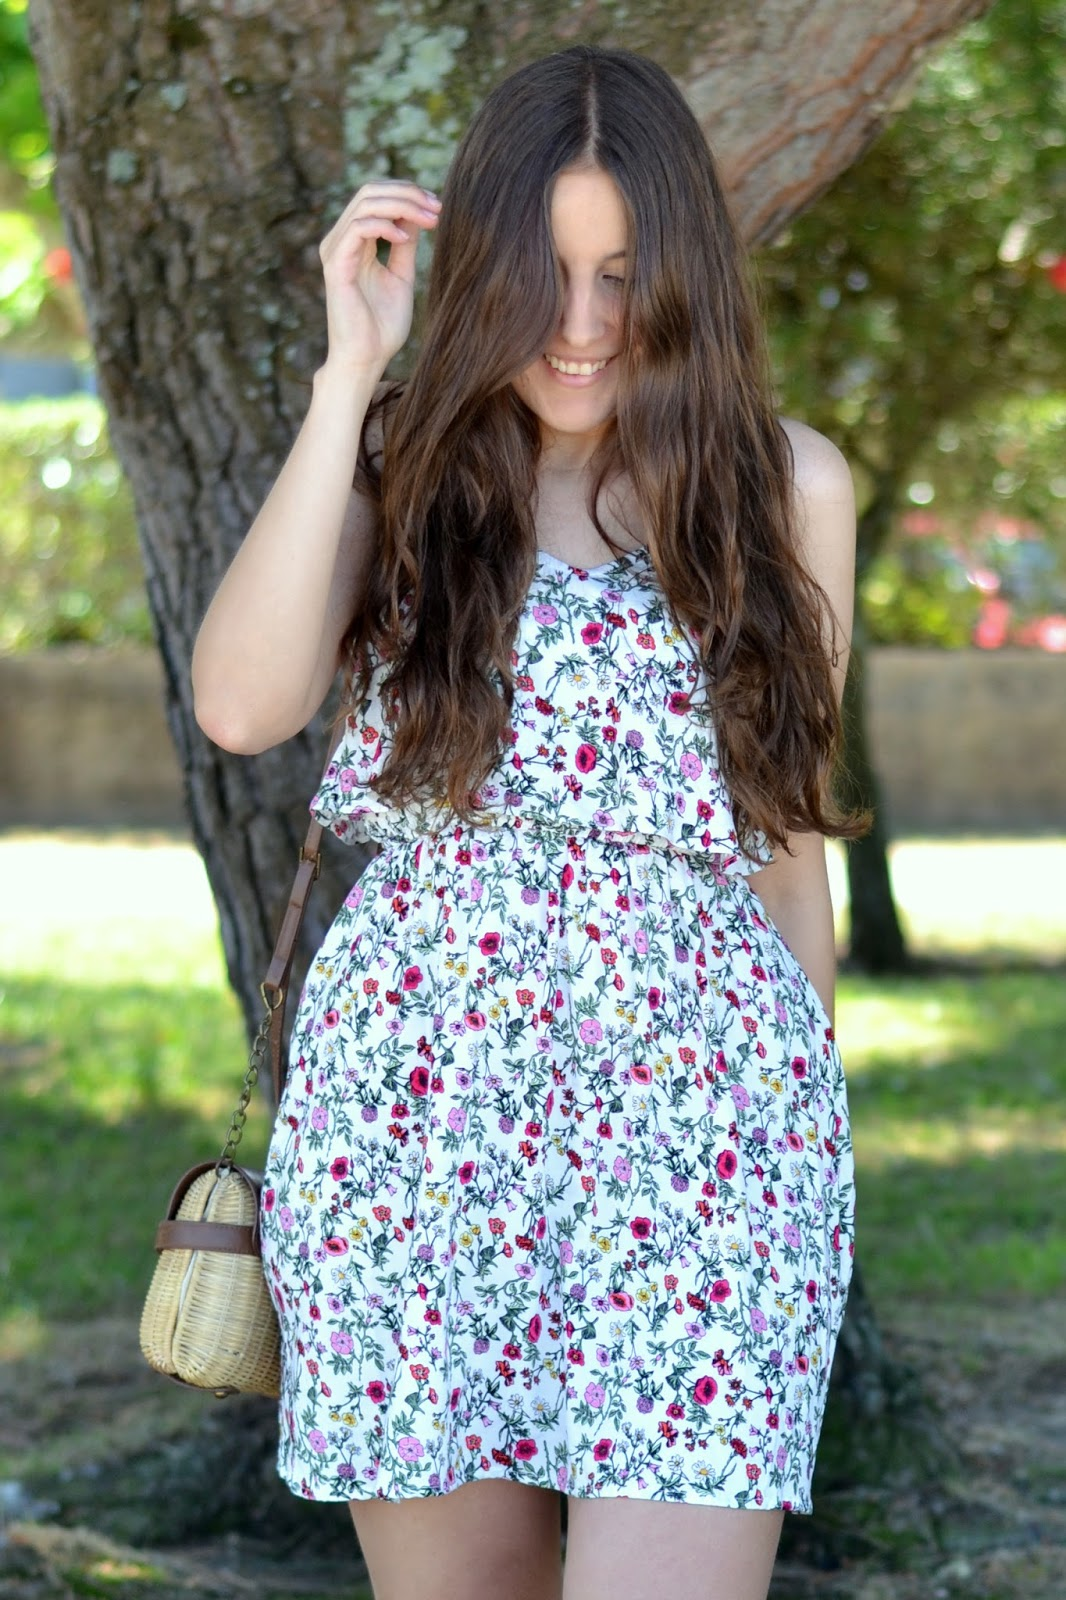 H&M Coachella floral dress